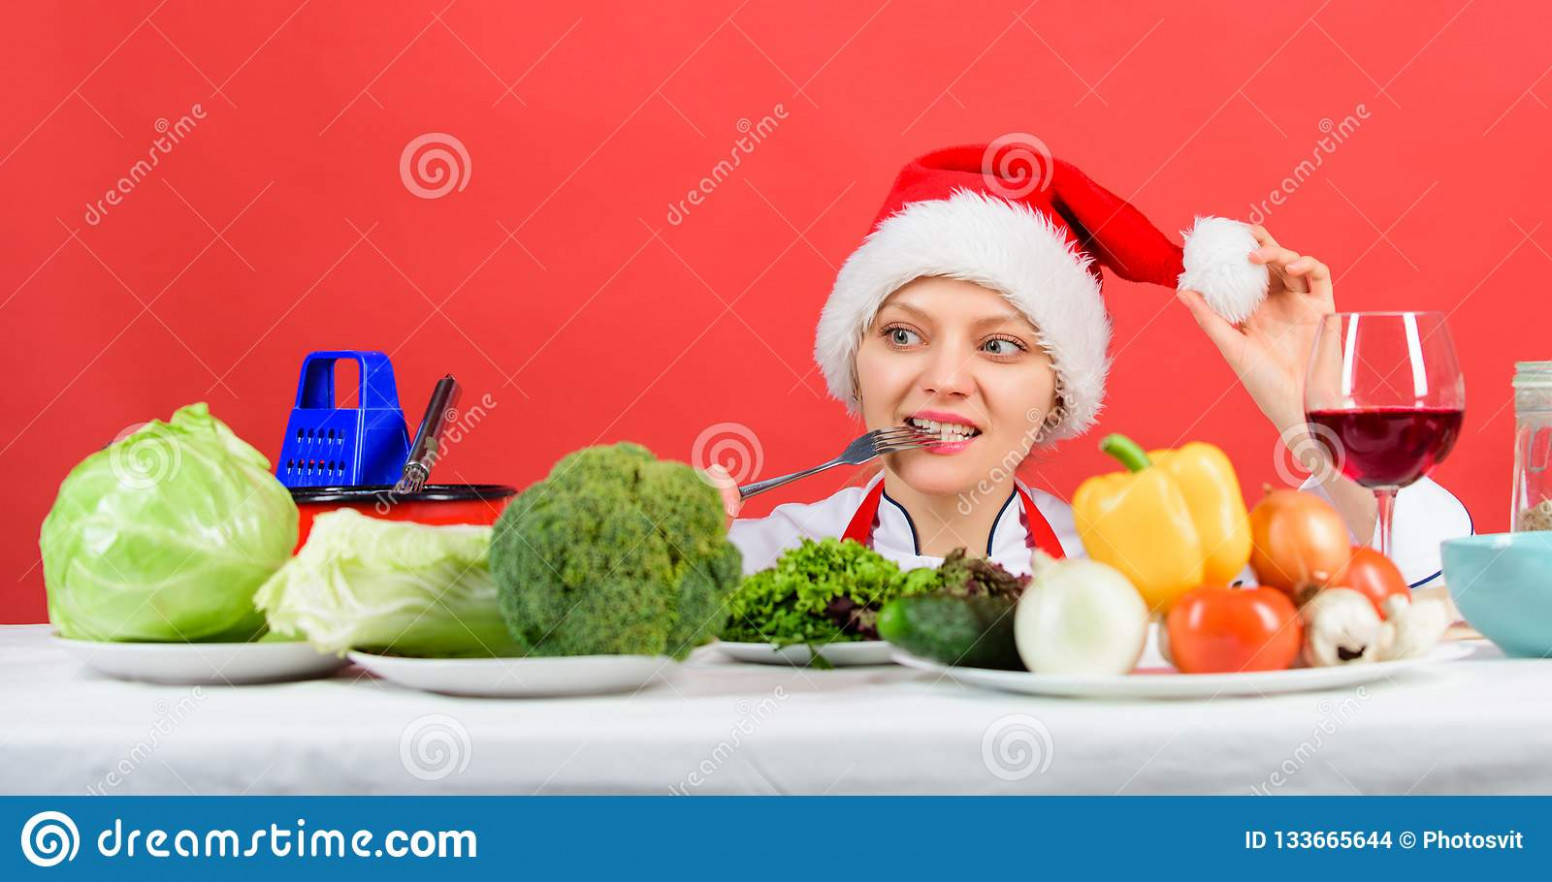 Festive Menu Concept. Christmas Dinner Idea. Healthy ..